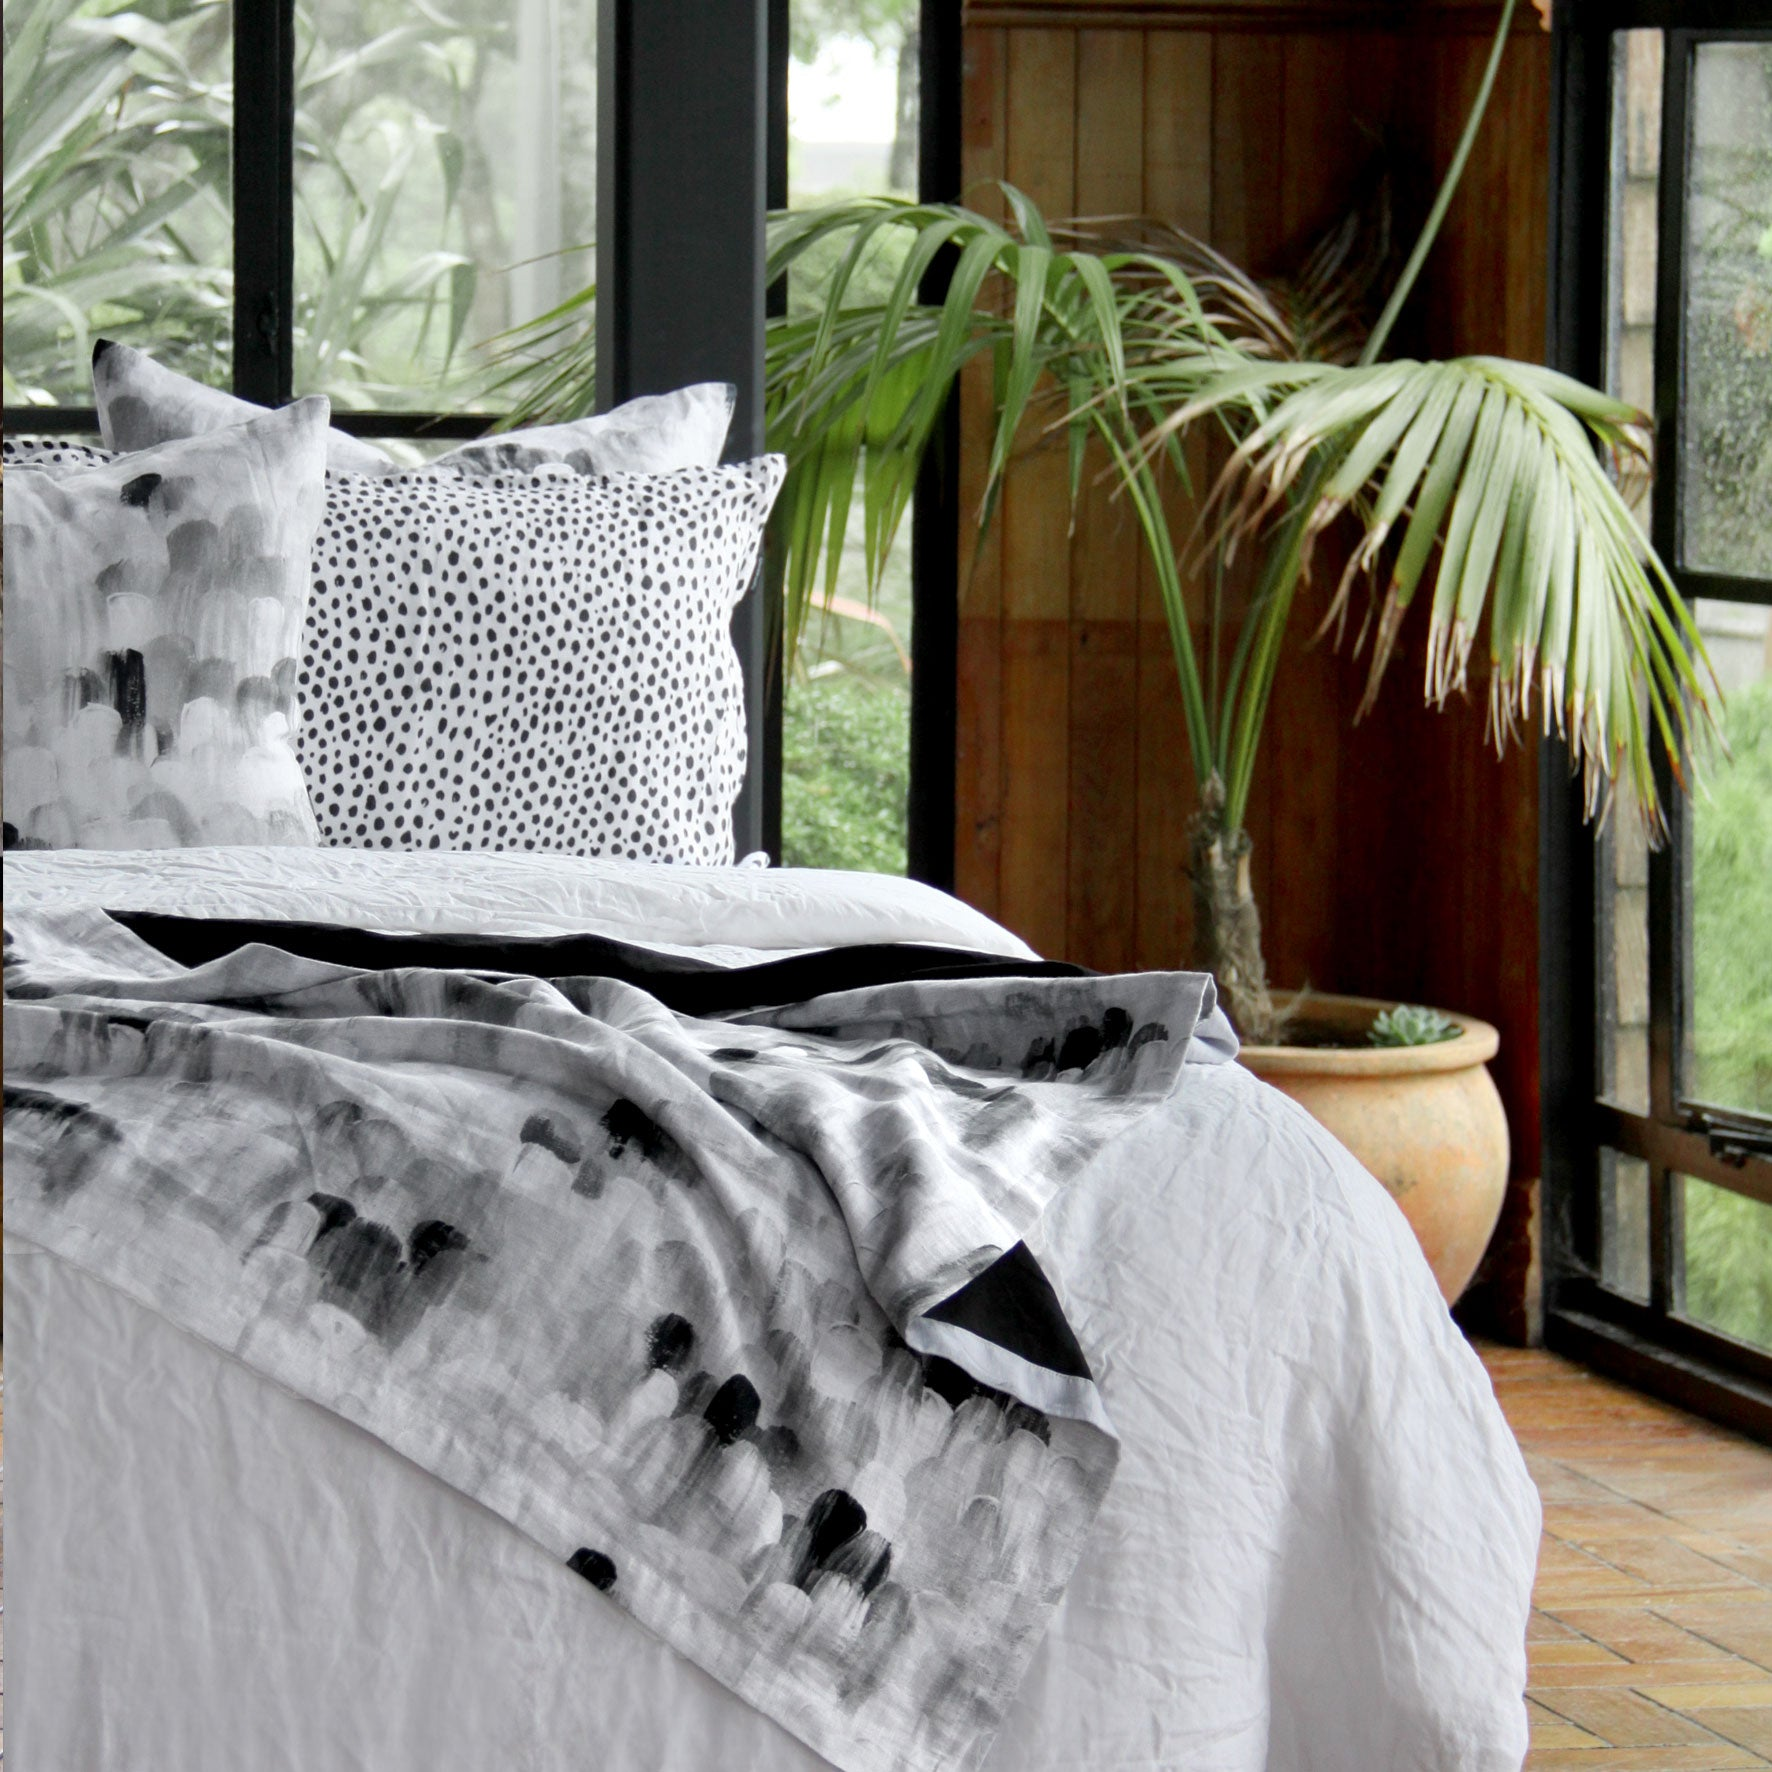 Linen throw blanket on the end of a bed. Linen bed linen in tones of white, grey and black